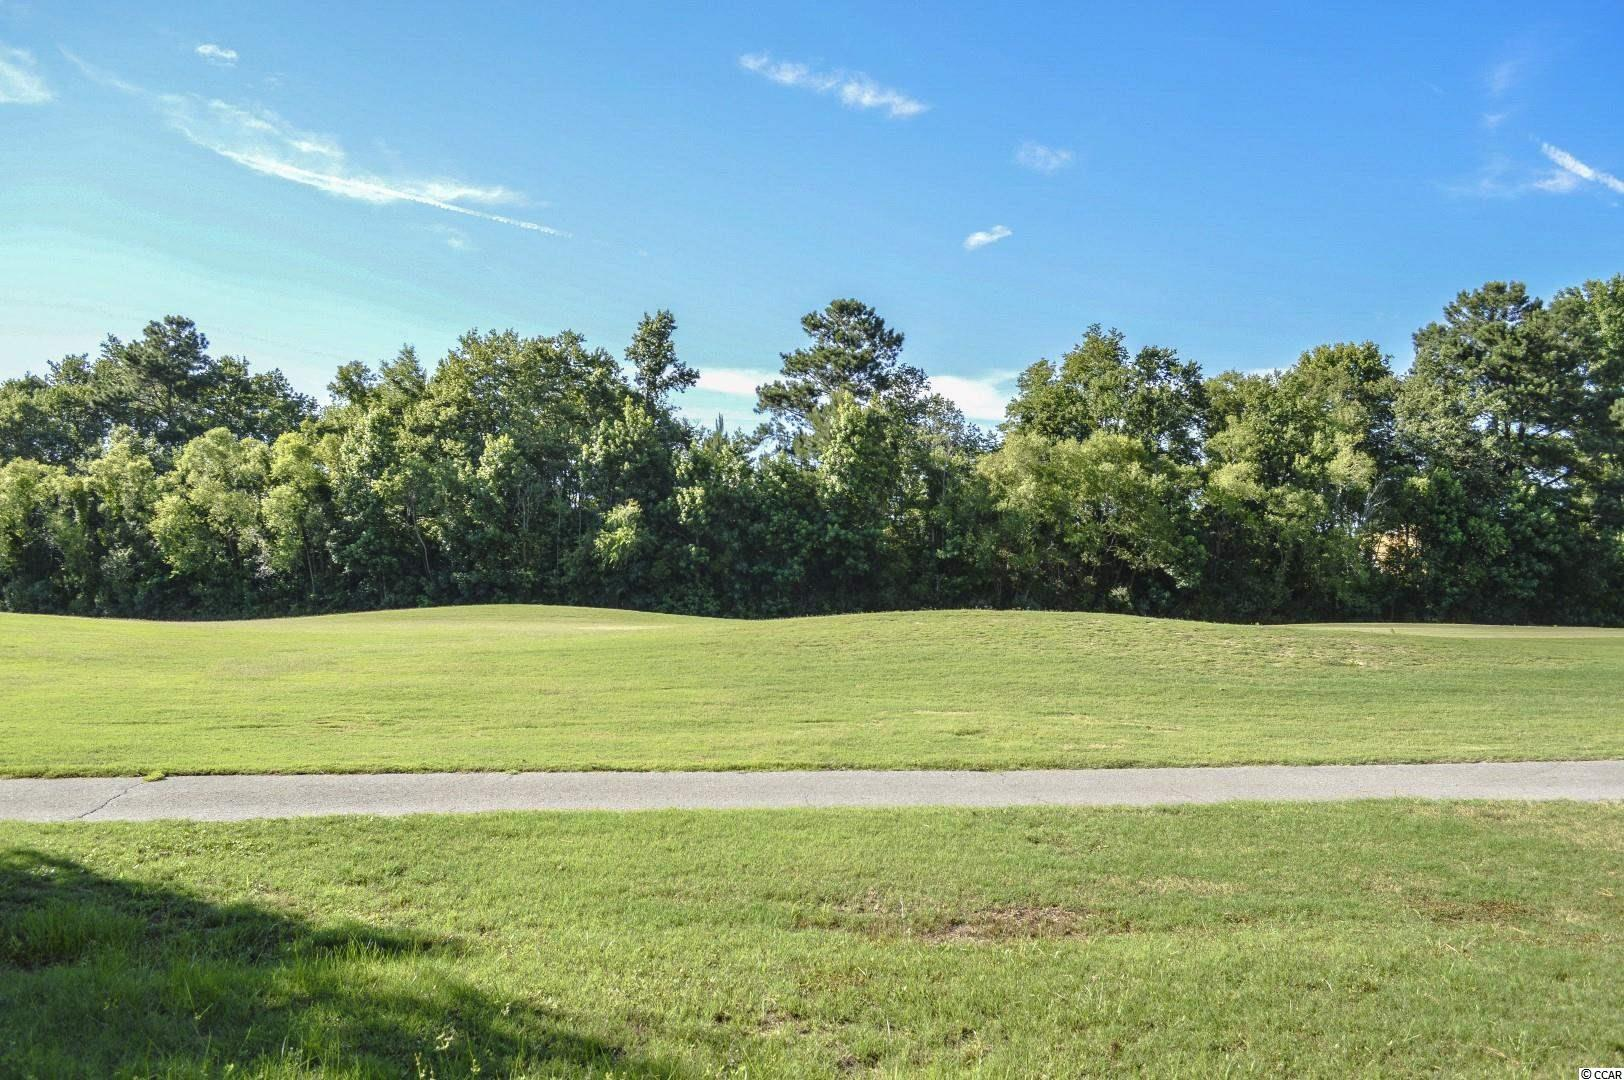 """PRIME 0.48 acre golf course lot in Wild Wing Plantation. Lot is located on the #2 Fairway of """"The Hummingbird"""" golf course. One of only two lots left along this fairway. WIDE BACK with incredible views. Top of the line community amenities - 180 acres of lakes, 27 holes of golf, clubhouse with fitness center, driving range, 3 pools, waterslide, splash fountain, basketball courts, tennis courts, playground, day docks and boardwalk. Close to CCU, HGTC, Conway Hospital, downtown Conway, shopping, dining, and entertainment. Short drive to the beach and everything downtown Myrtle Beach has to offer. Enjoy the comforts that come with NEW and build the home of your dreams on this prime golf course lot!"""